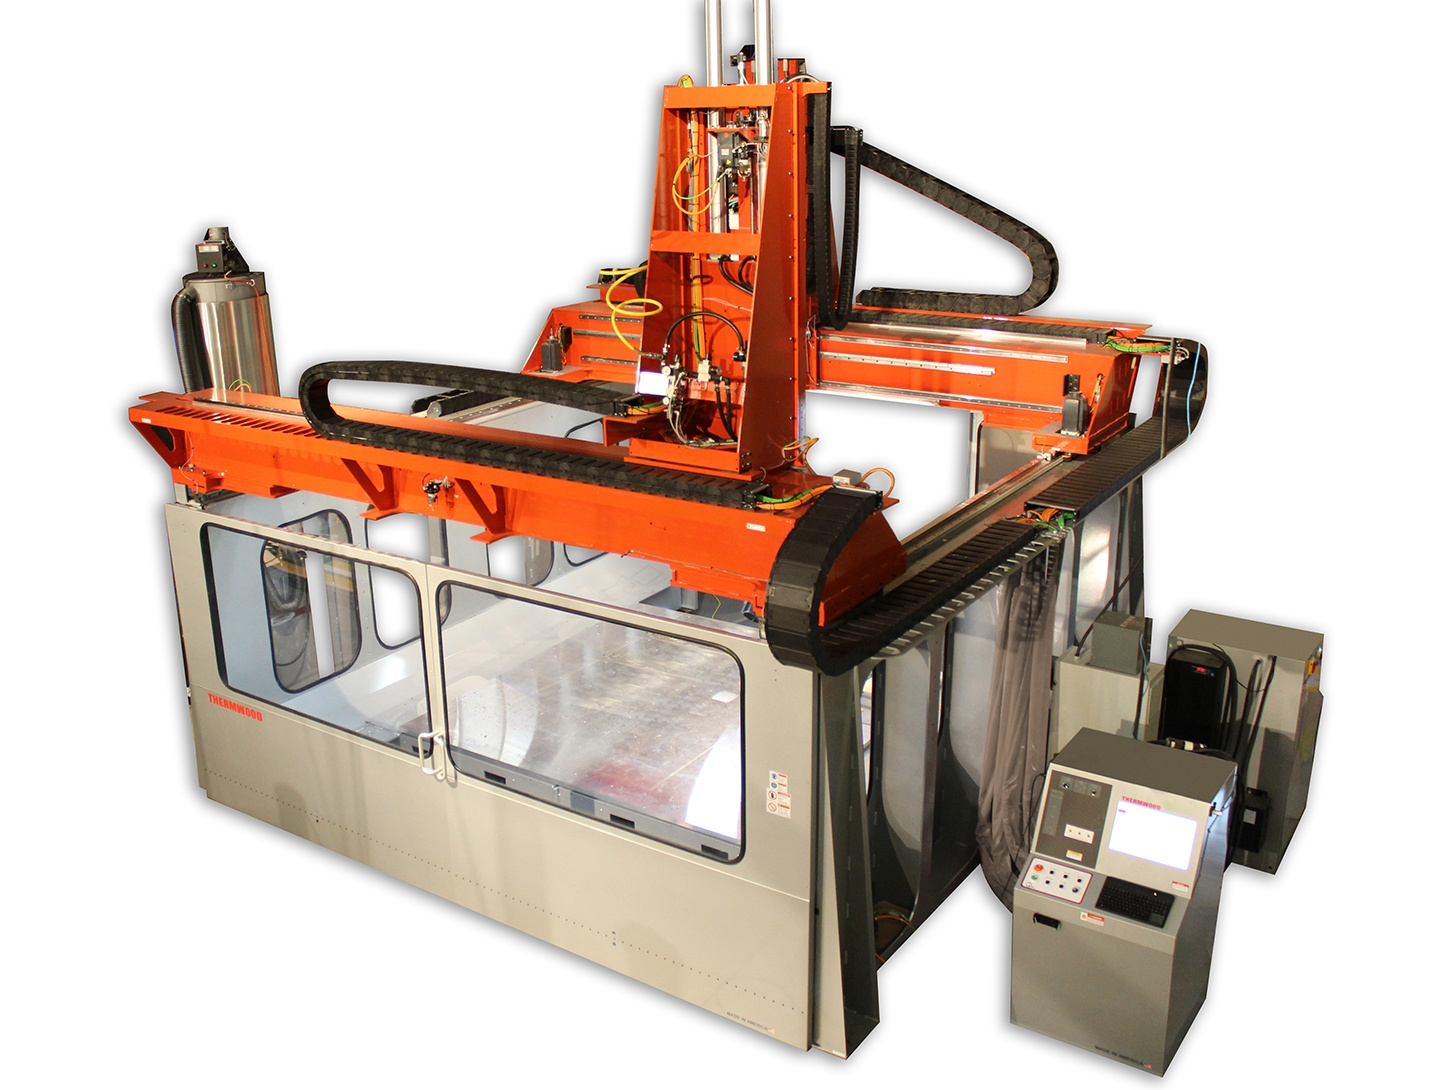 Thermwood LSAM Time-Lapse Video 3D Printing Two Parts Simultaneously